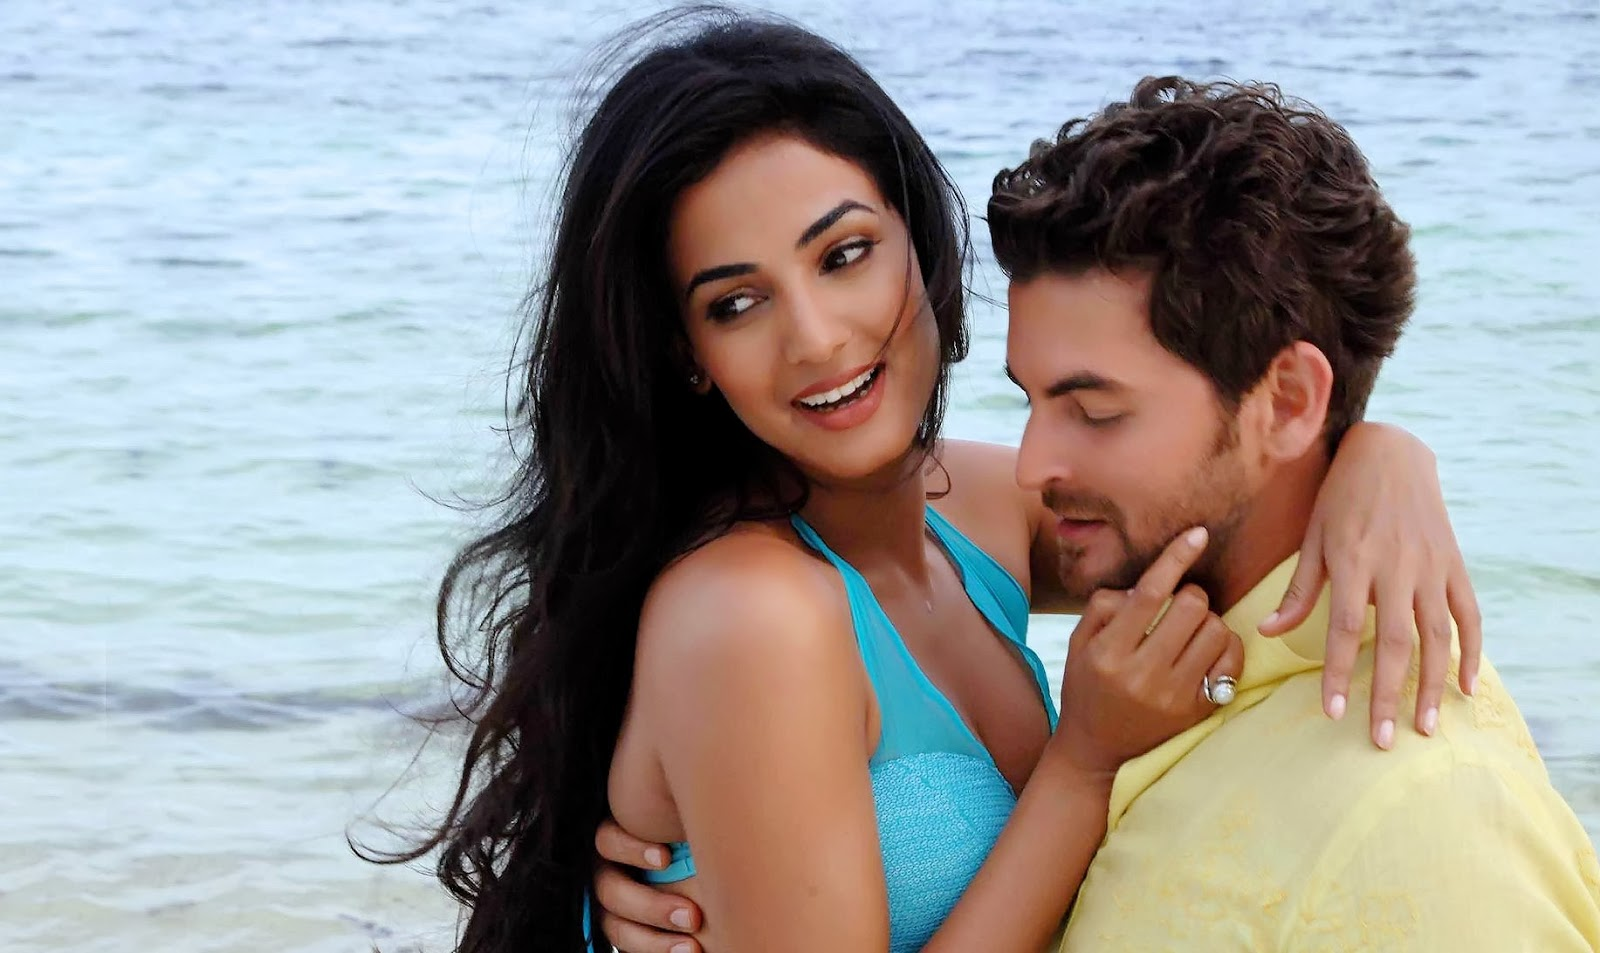 lovely couples free hd wallpaper download: sonal chauhan & neil